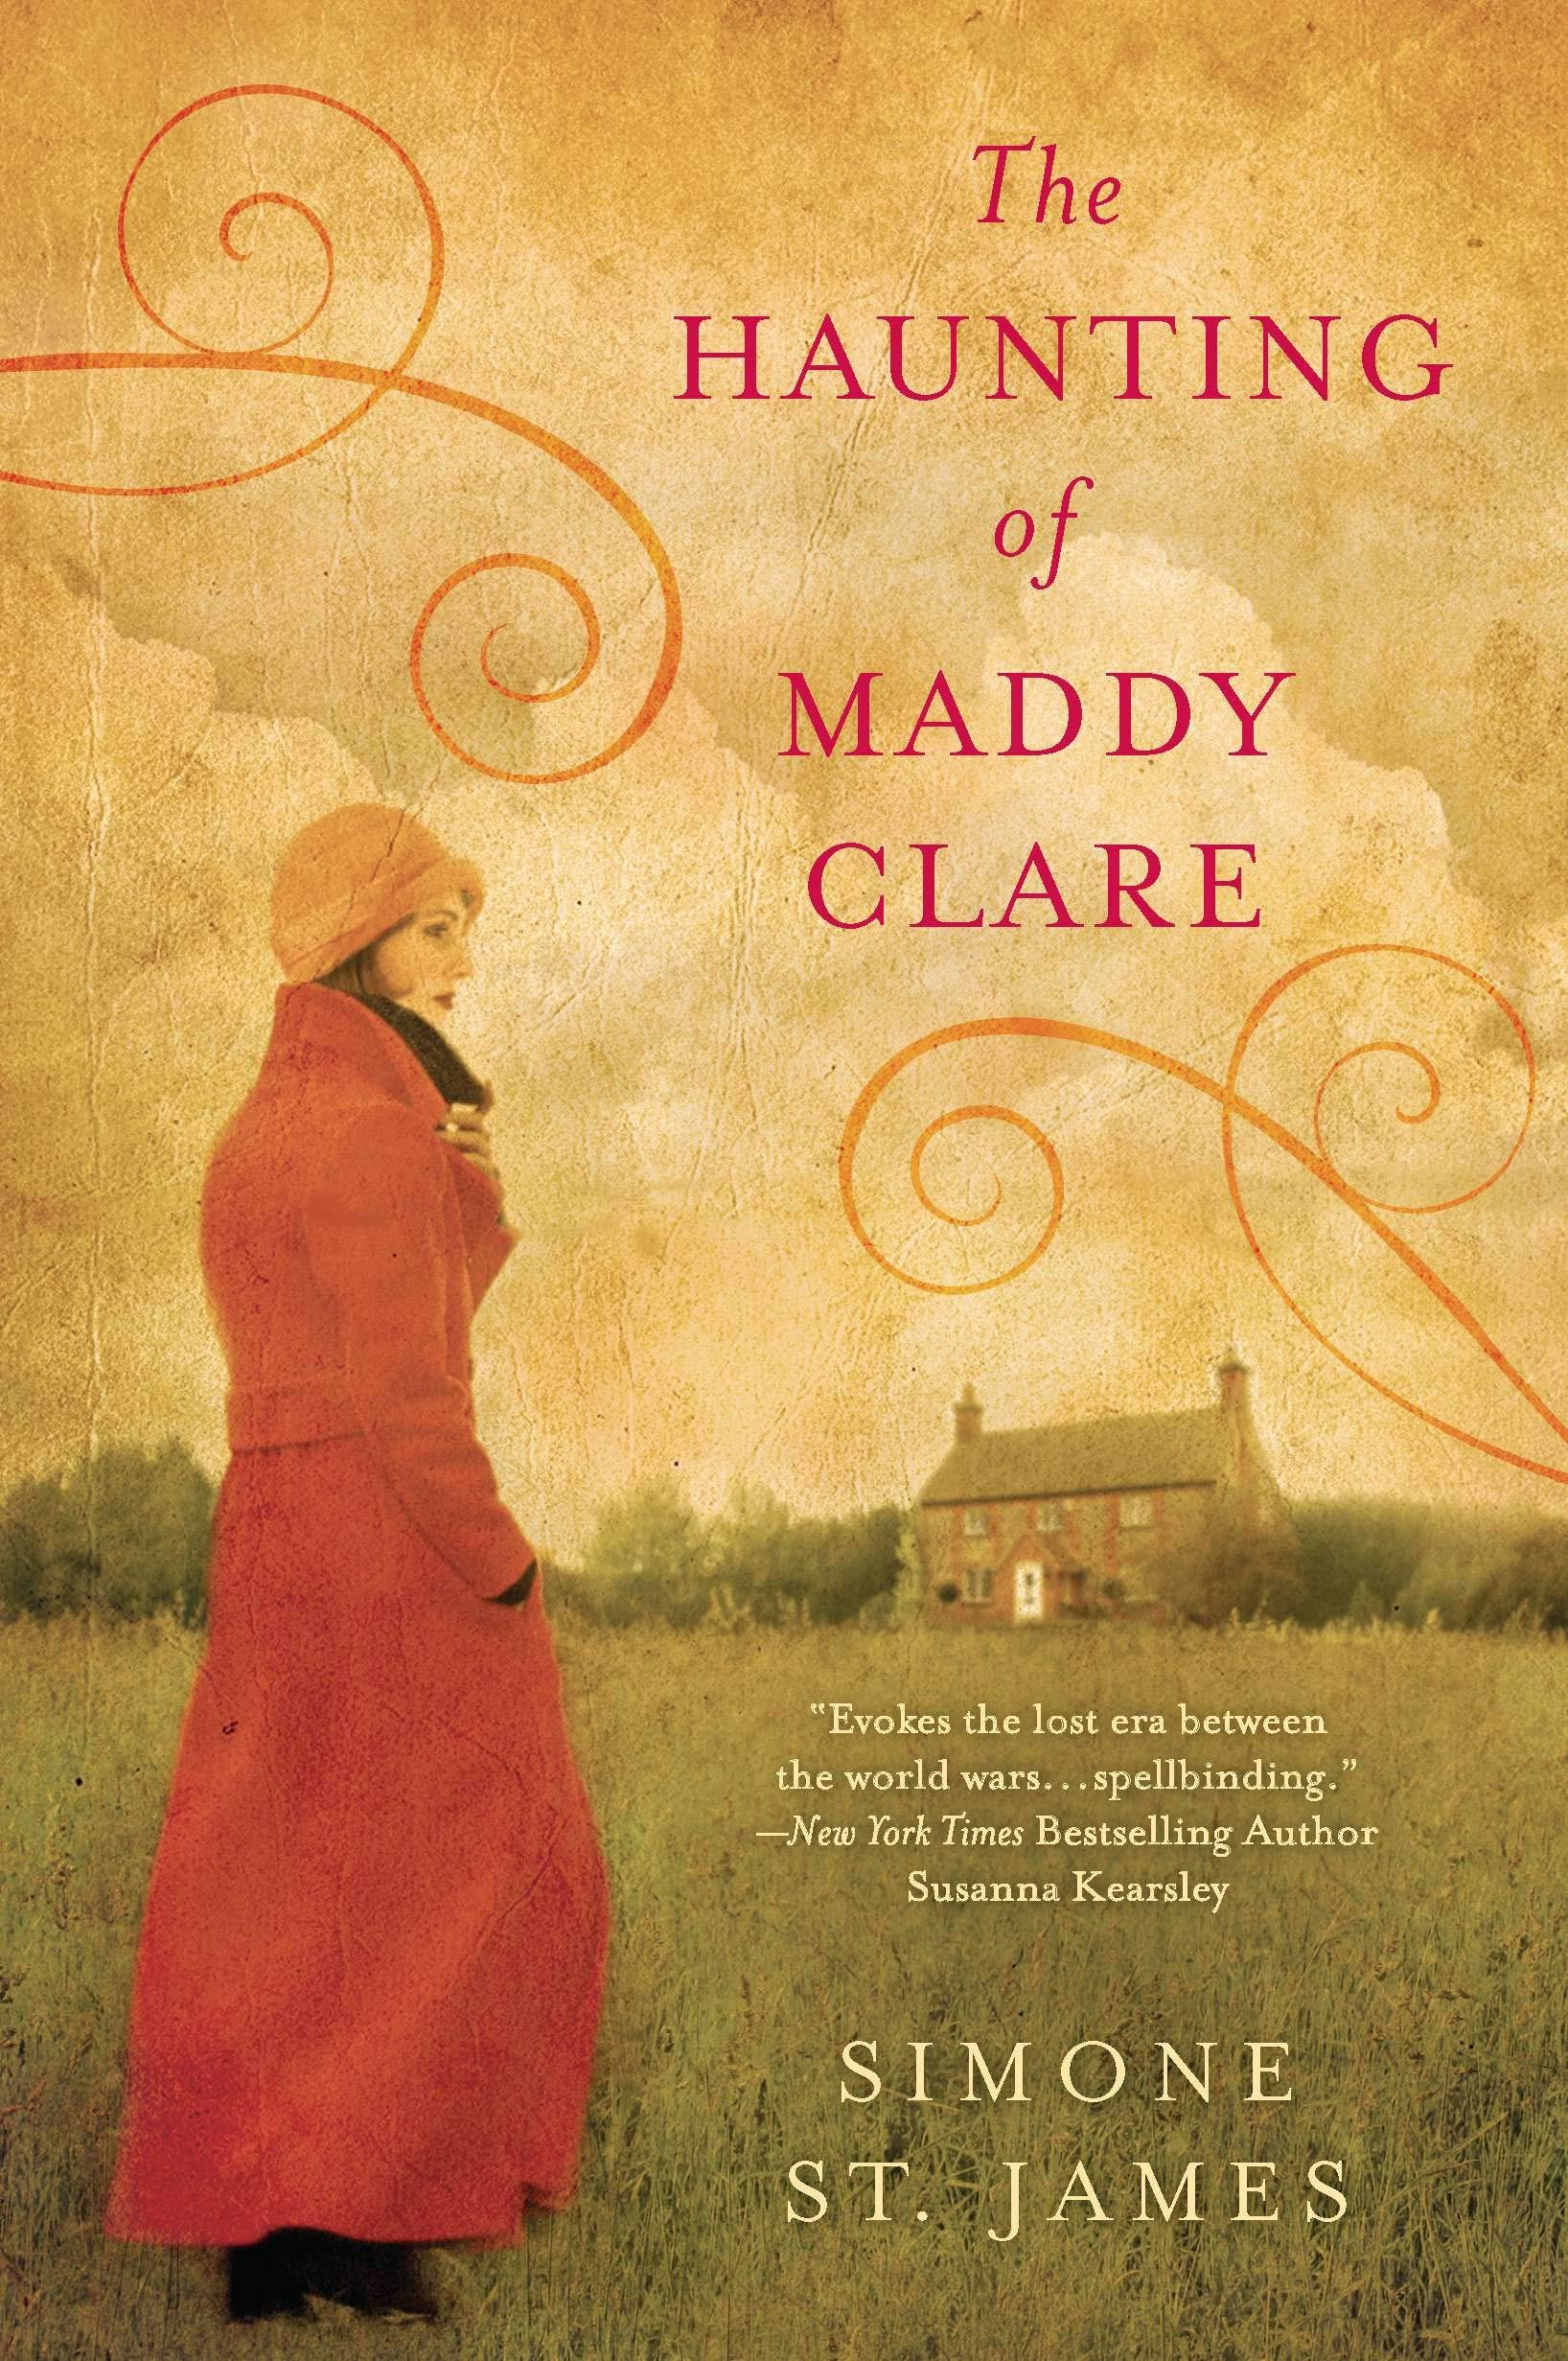 Amazon.com: The Haunting of Maddy Clare (9780451235688): St. James ...